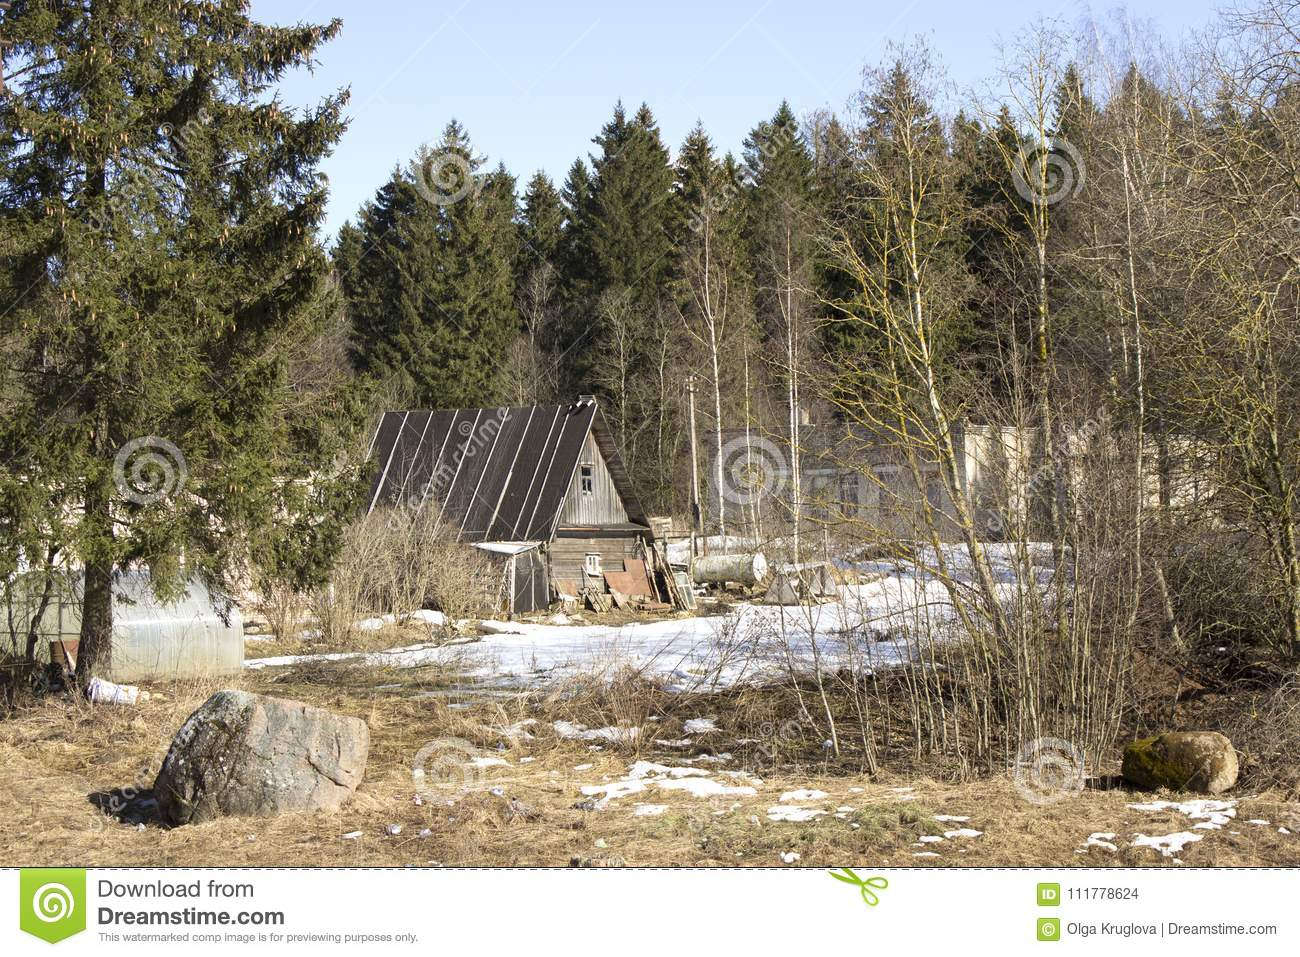 A small wooden house at the edge of a forest